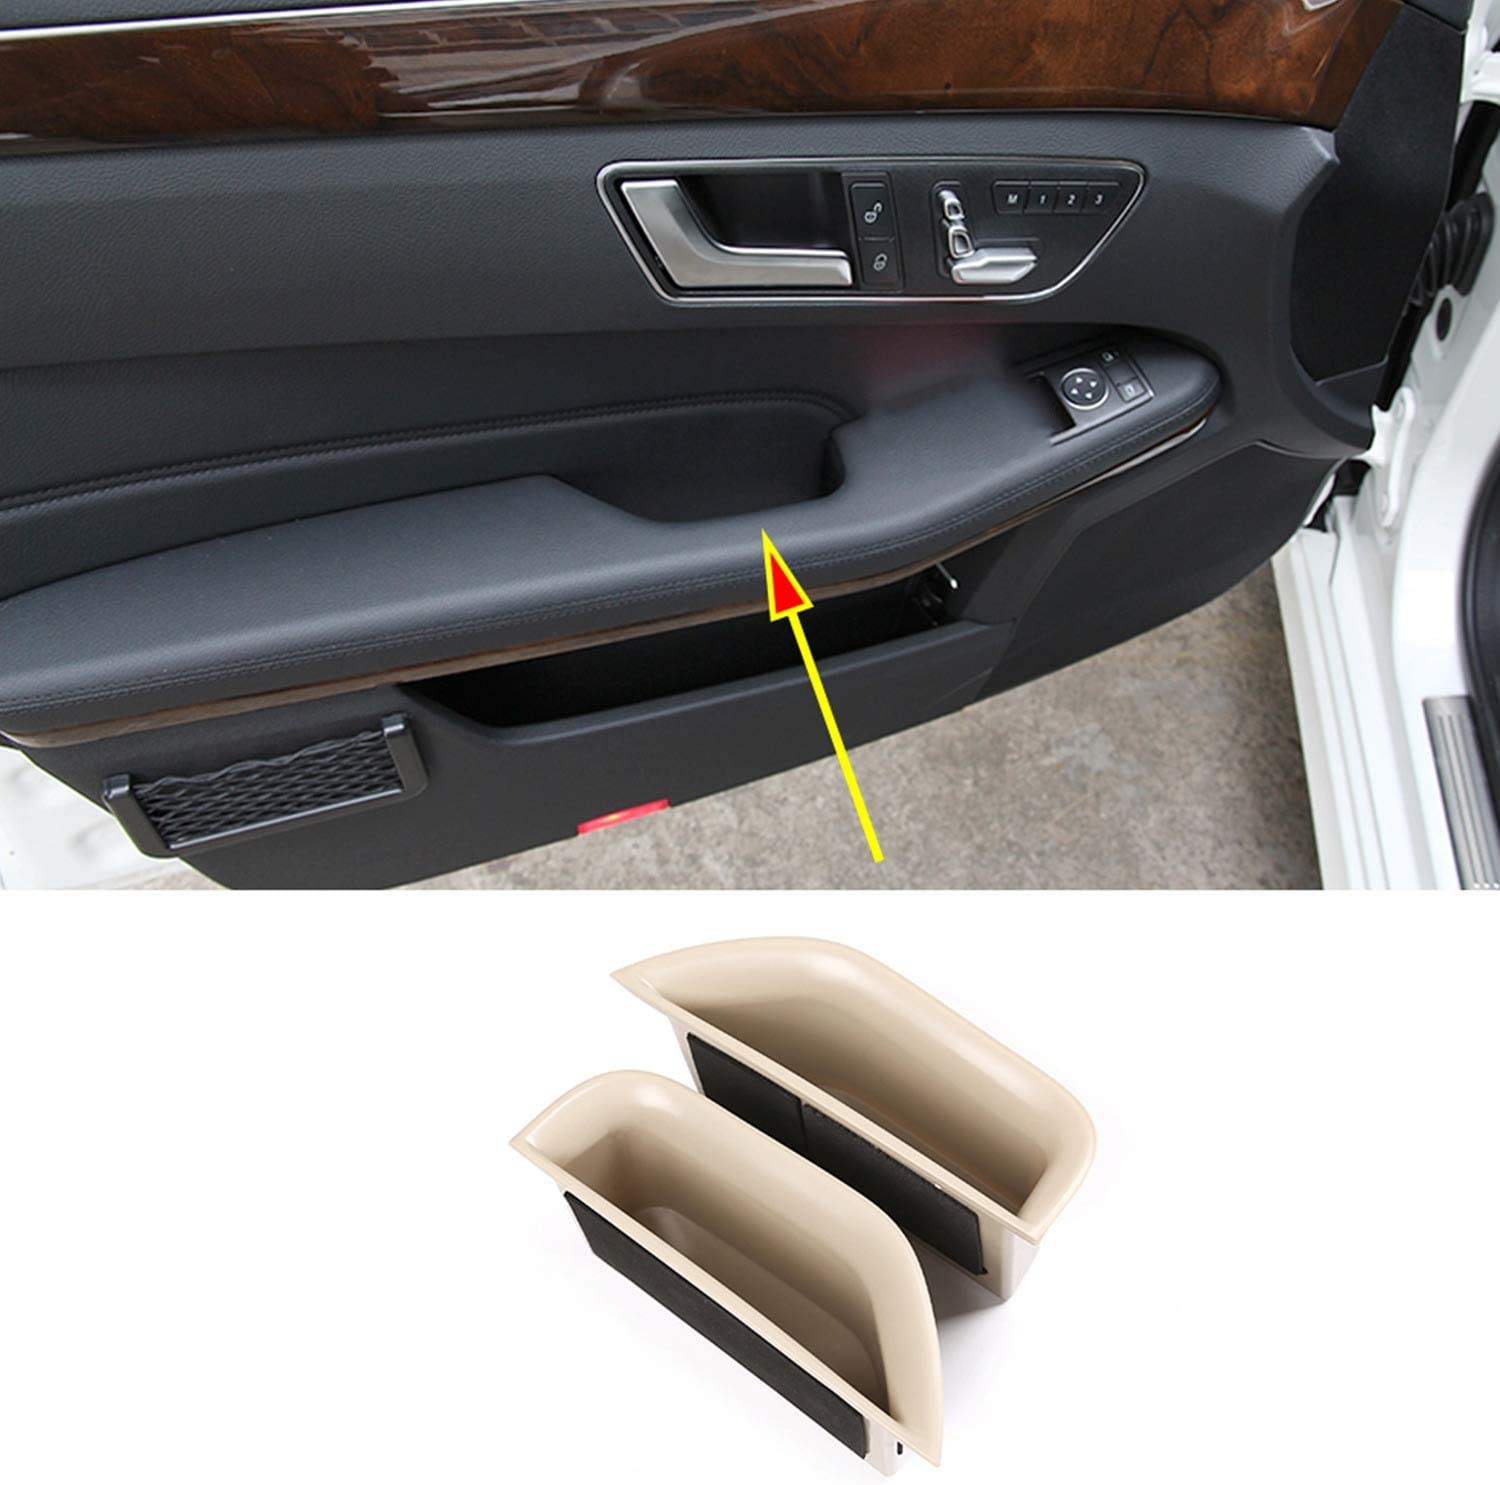 Nrpfell for Mercedes E Class W212 2008-2015 Front Inner Door Armrest Storage Box Container Holder Car Accessories